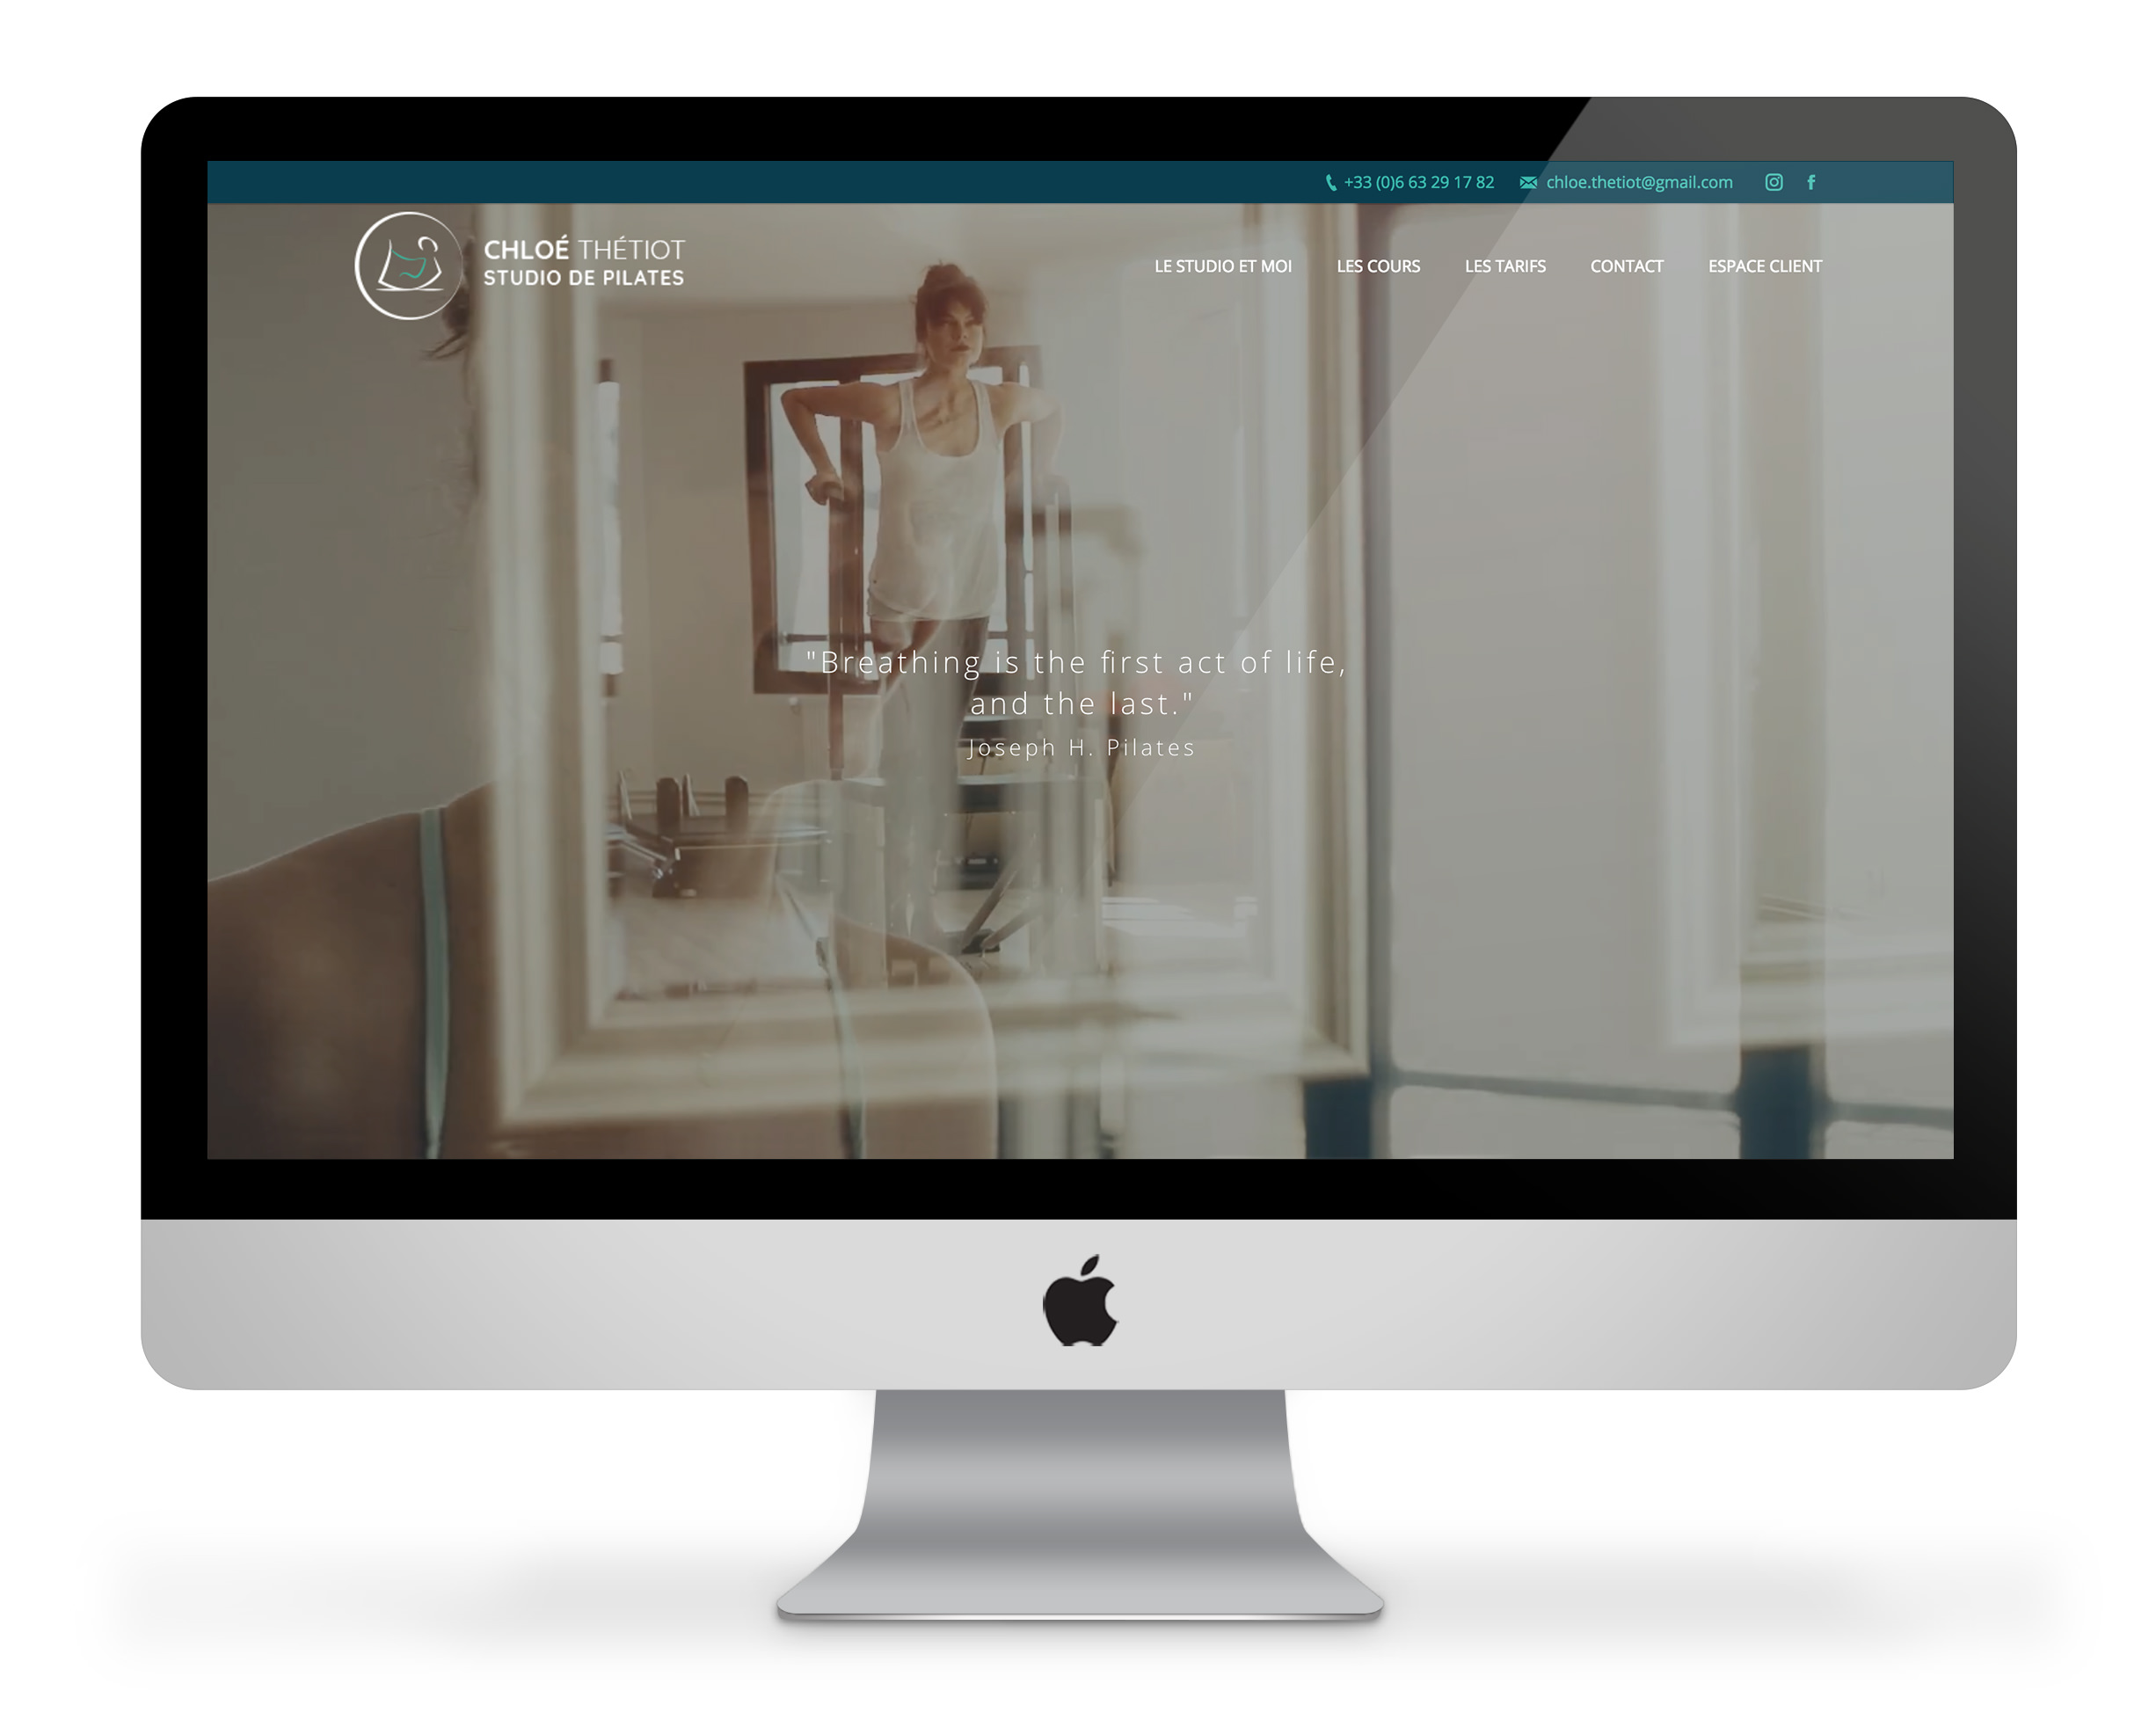 ecran-site-home-chloe-thetiot-vague-graphique